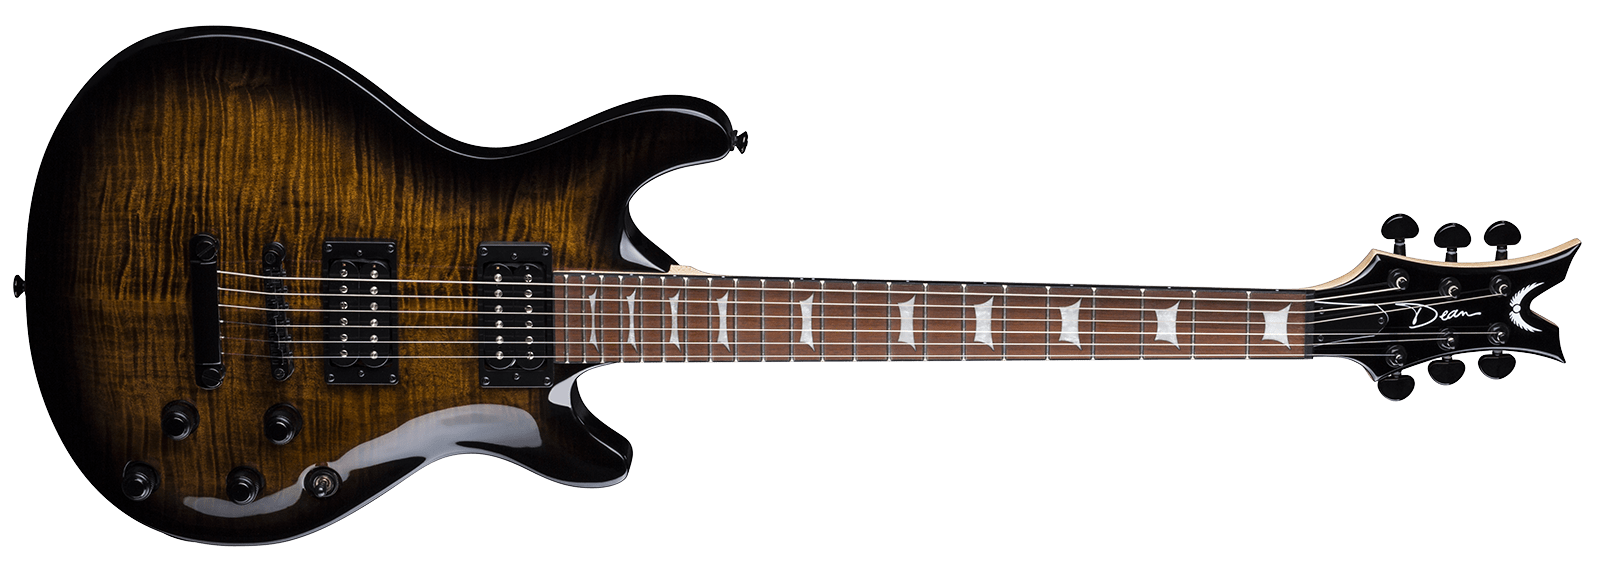 Icon X Flame Top Charcoal Burst